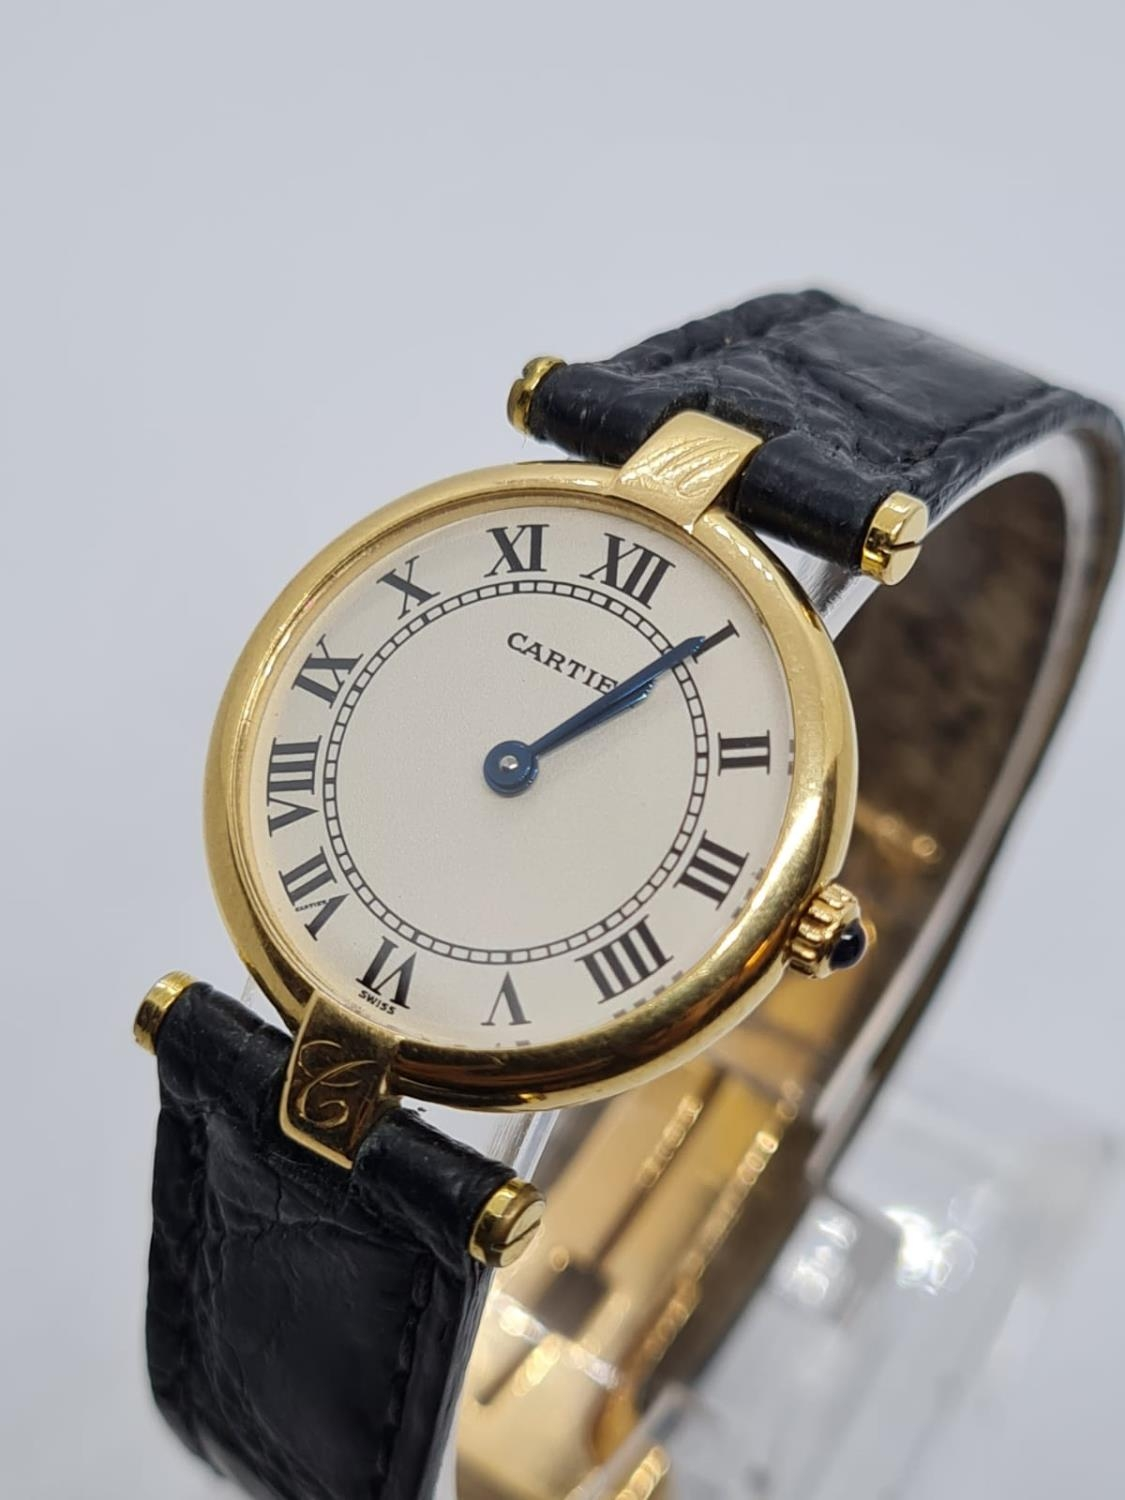 Vintage Cartier 18ct Gold Ladies quartz WATCH with round face and Roman Numerals and original - Image 2 of 4